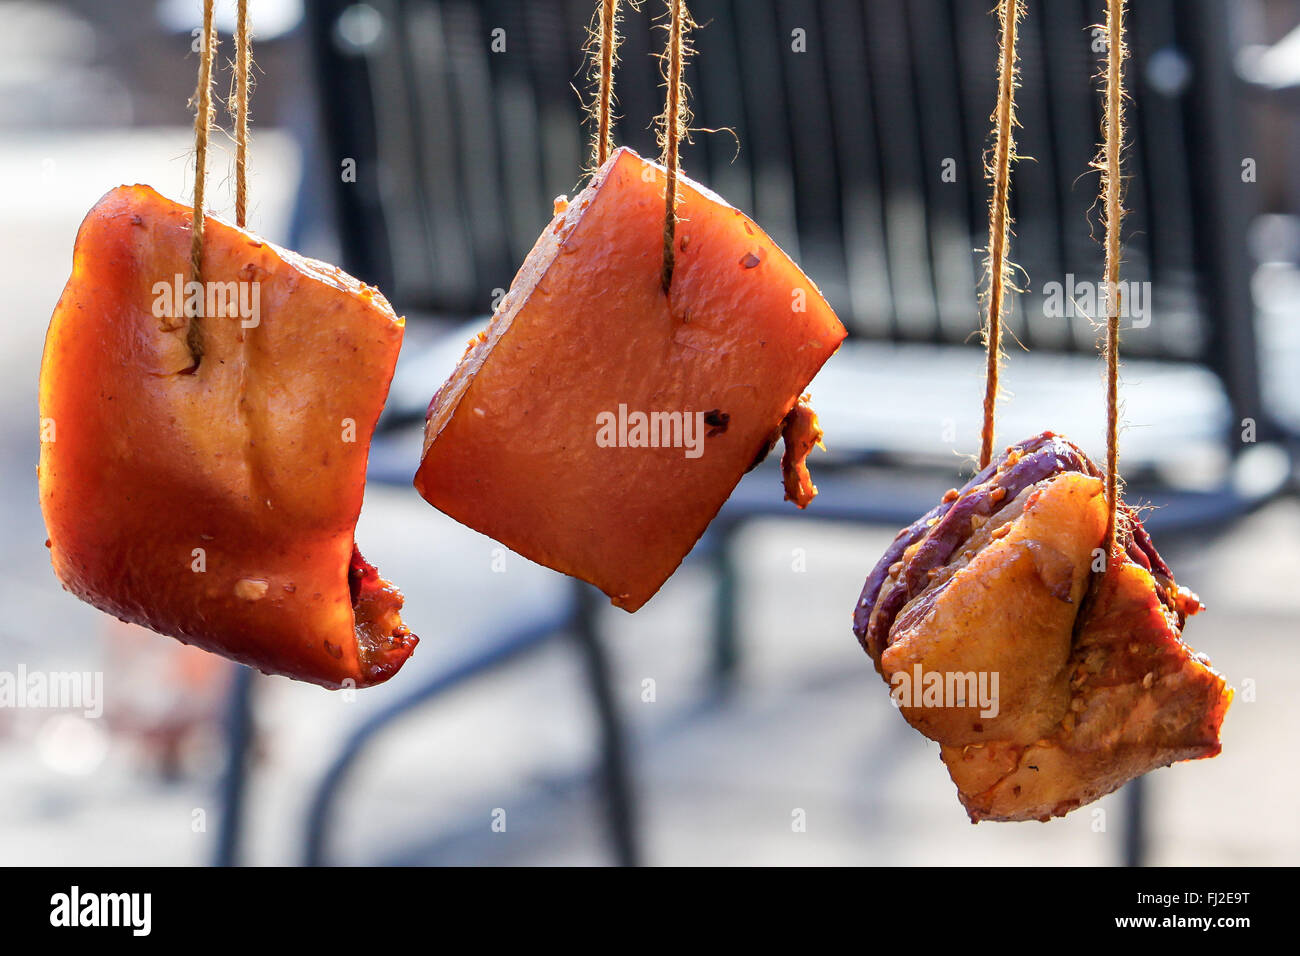 Three bacon hanging outside with backlight - Stock Image